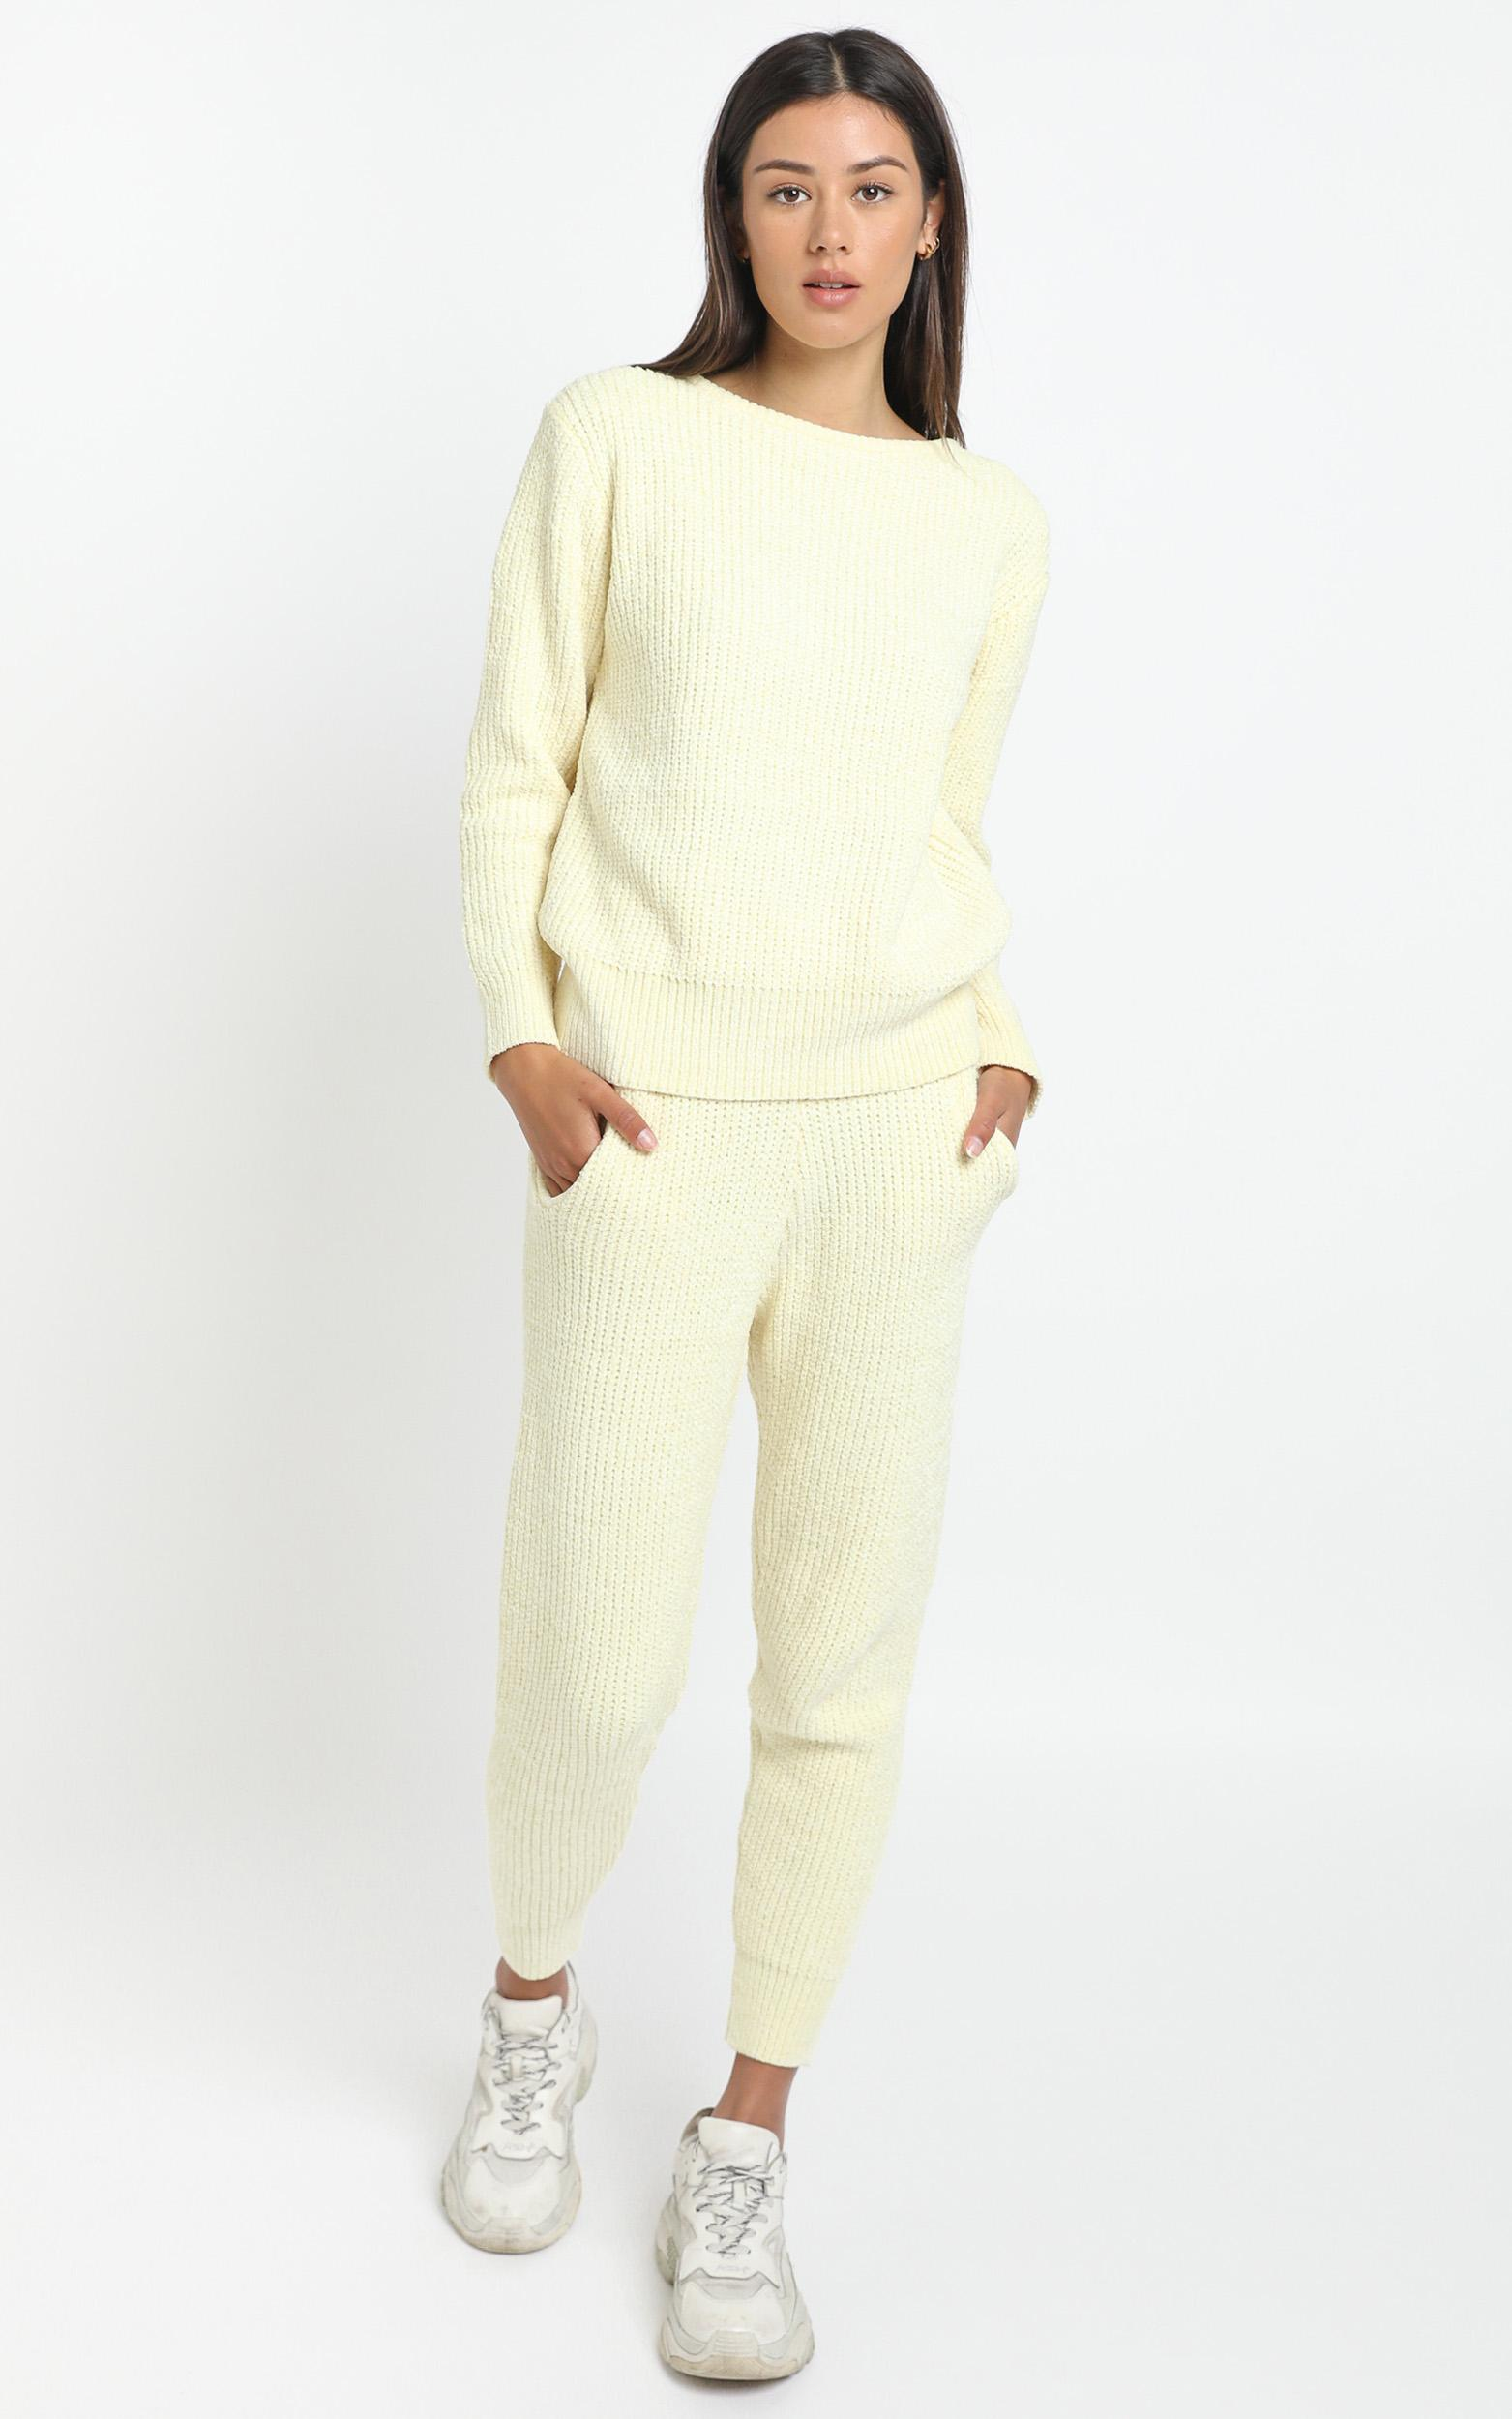 Tabitha Knit Jumper in Pastel Yellow - 12 (L), Yellow, hi-res image number null